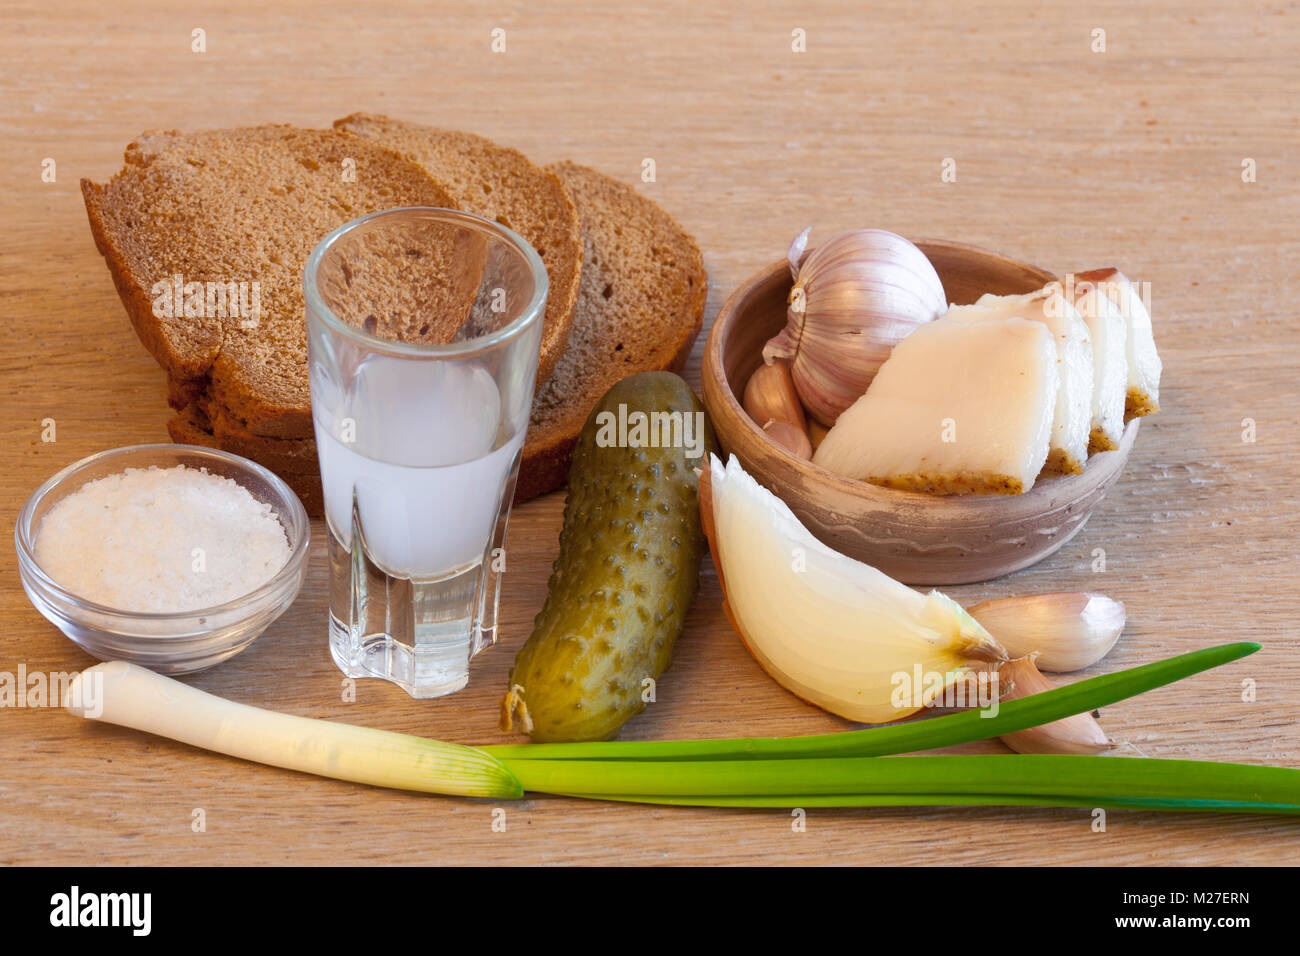 bread bacon and moonshine with onion lushy table for Russian - Stock Image